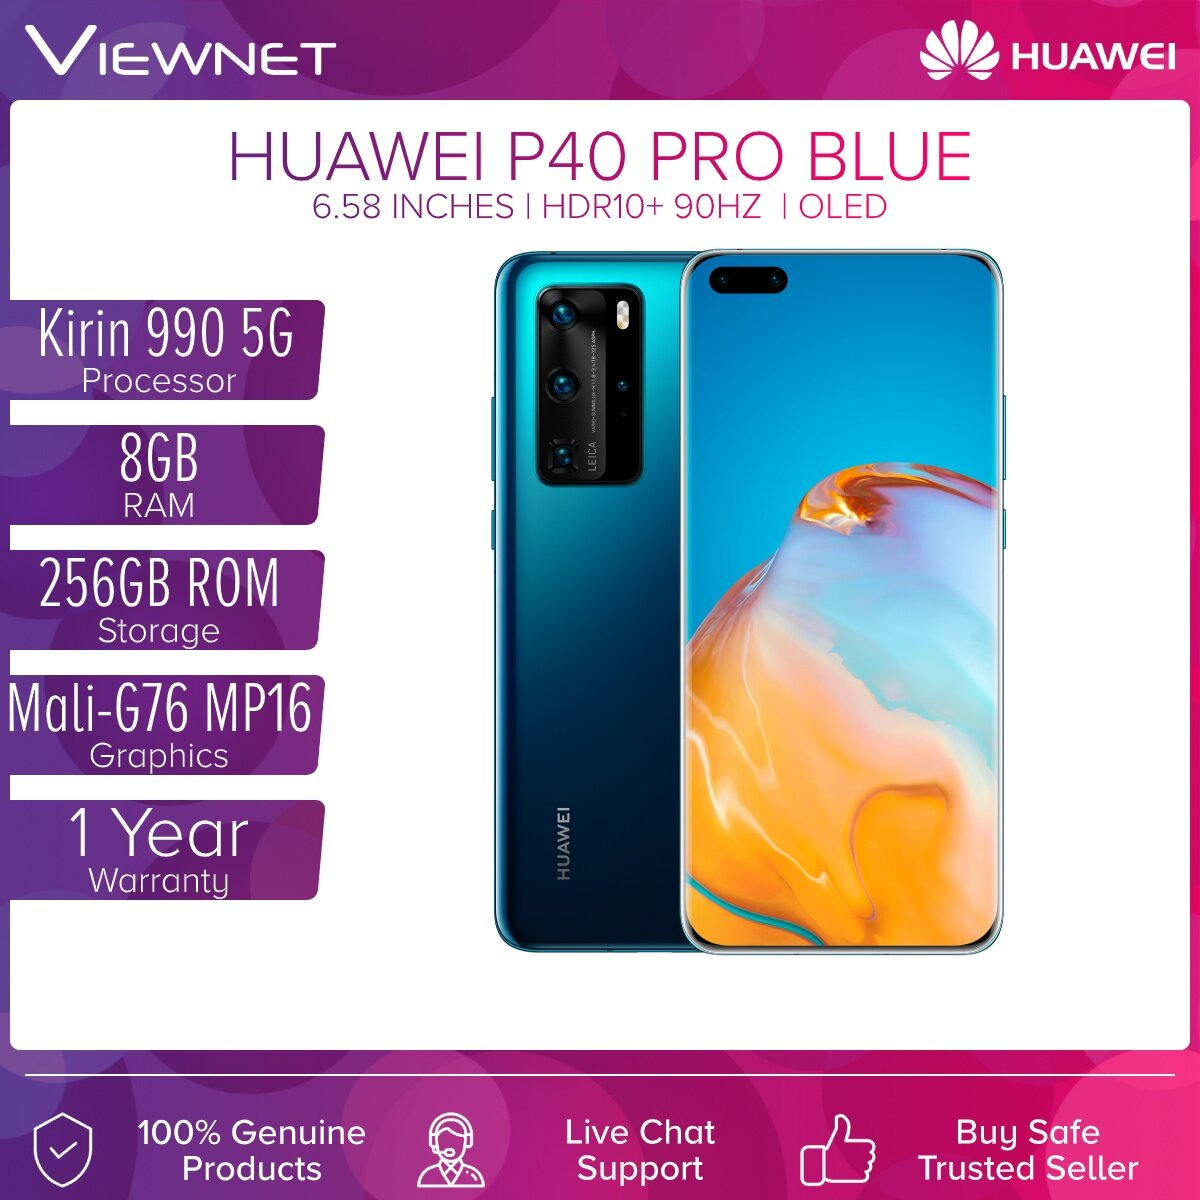 Huawei P40 Pro 5G Smartphone 8GB RAM + 256GB ROM Visionary Photography (Blue,Silver,Gold)